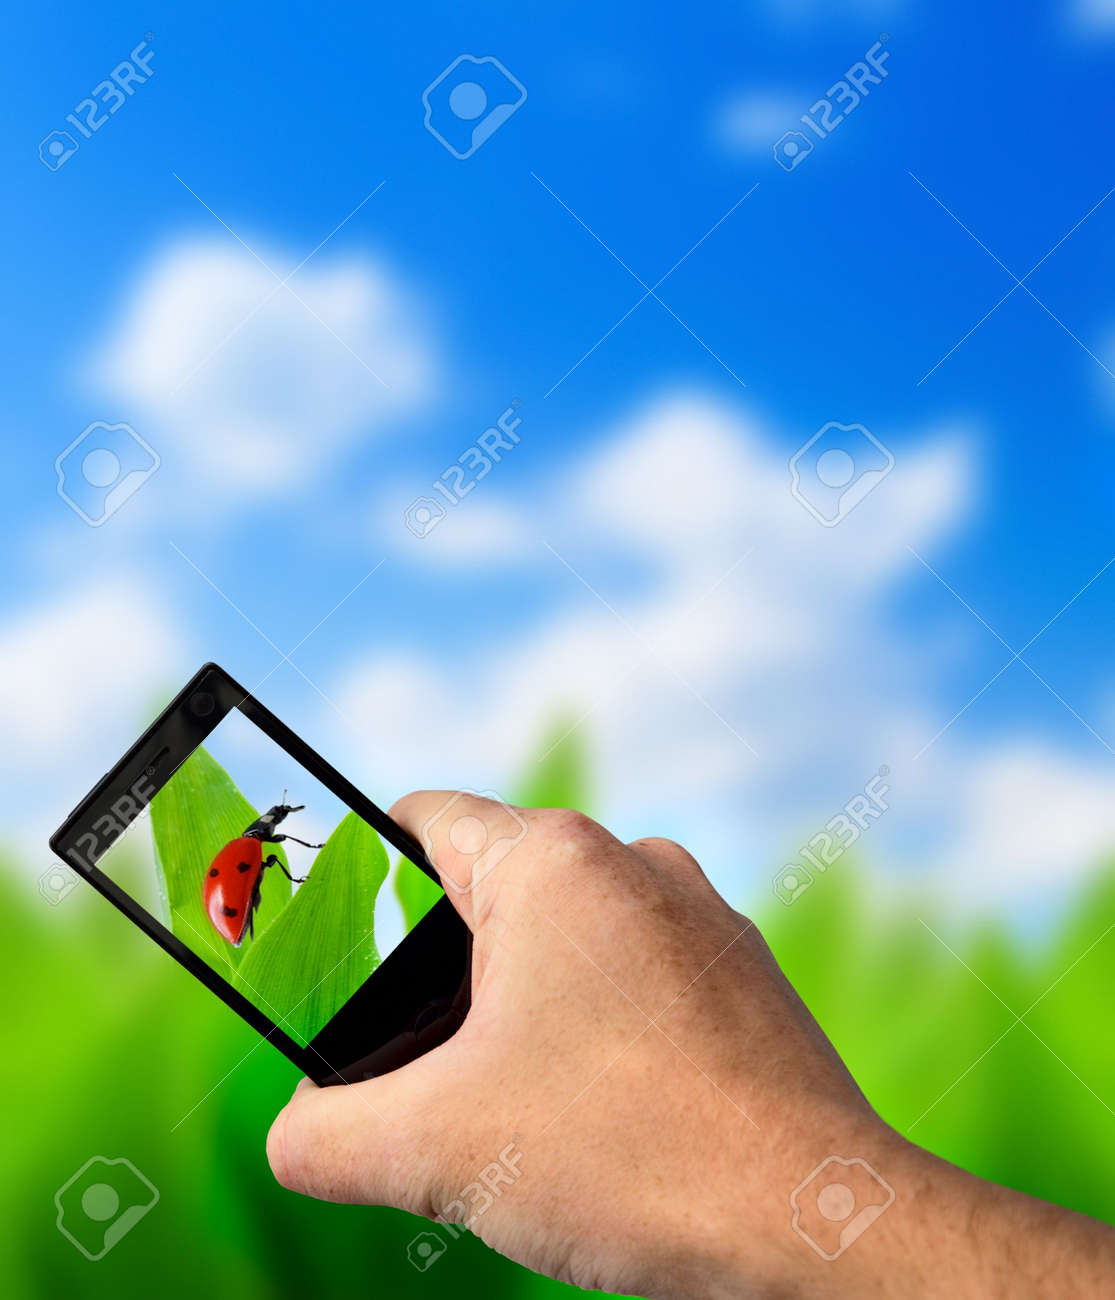 green grass and perfect day Stock Photo - 5097364